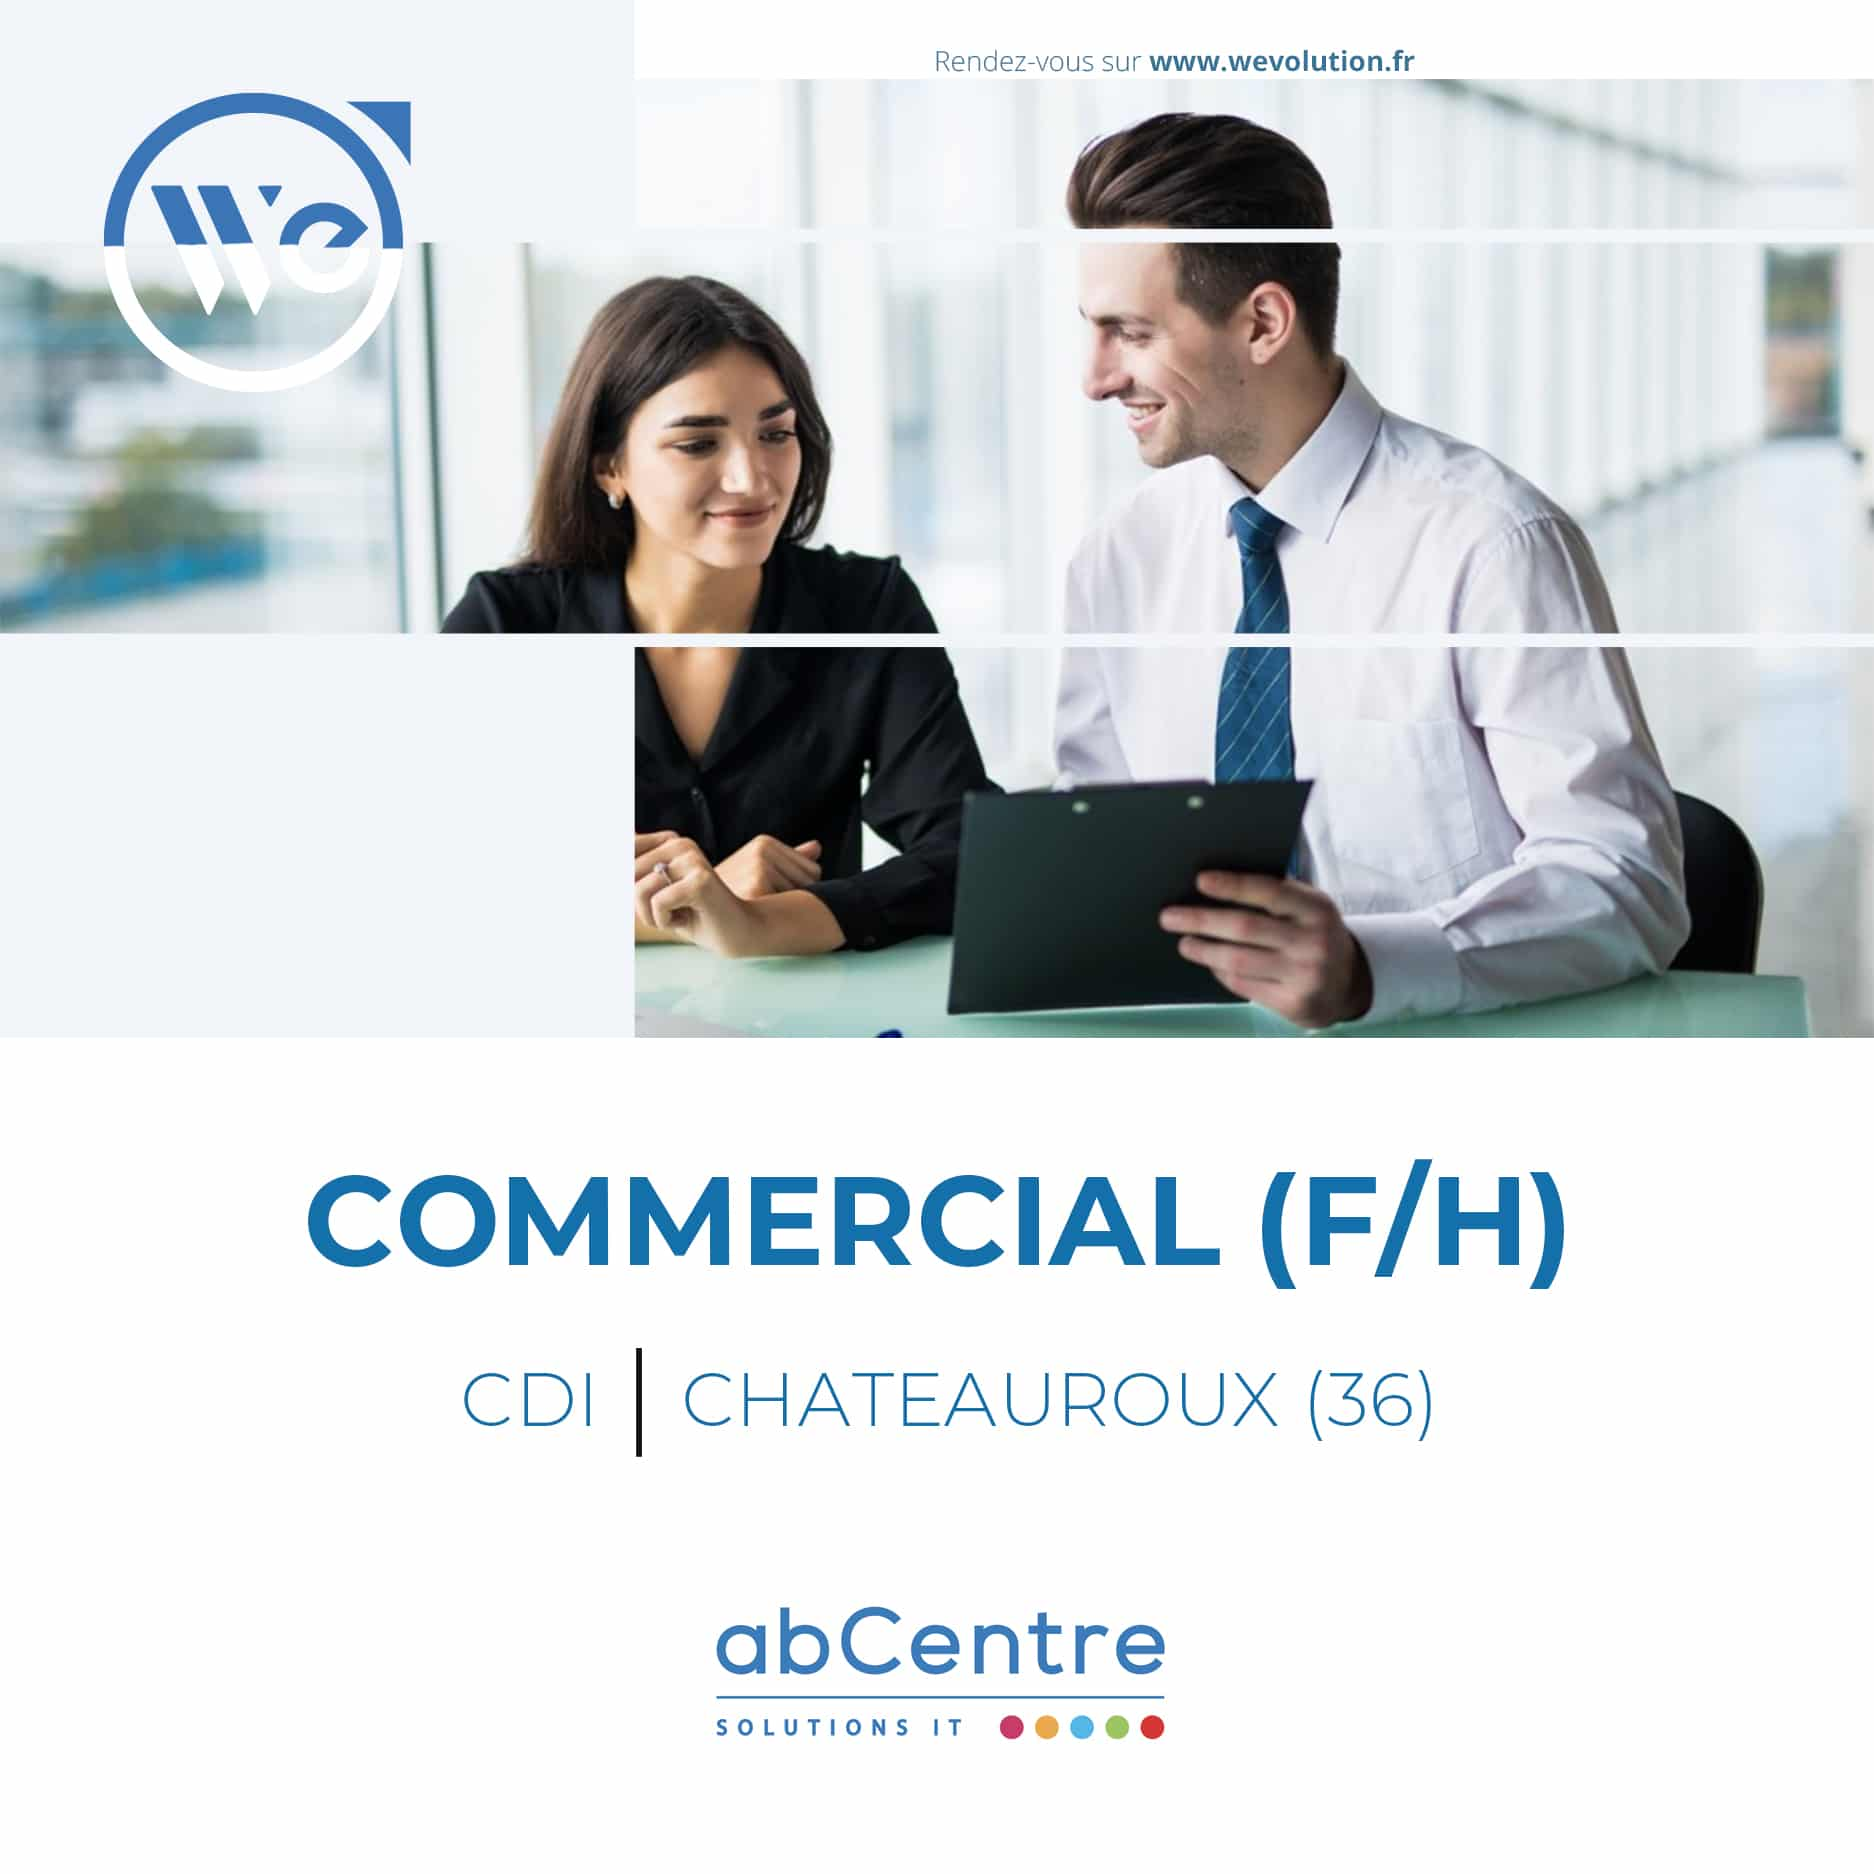 COMMERCIAL – abCentre